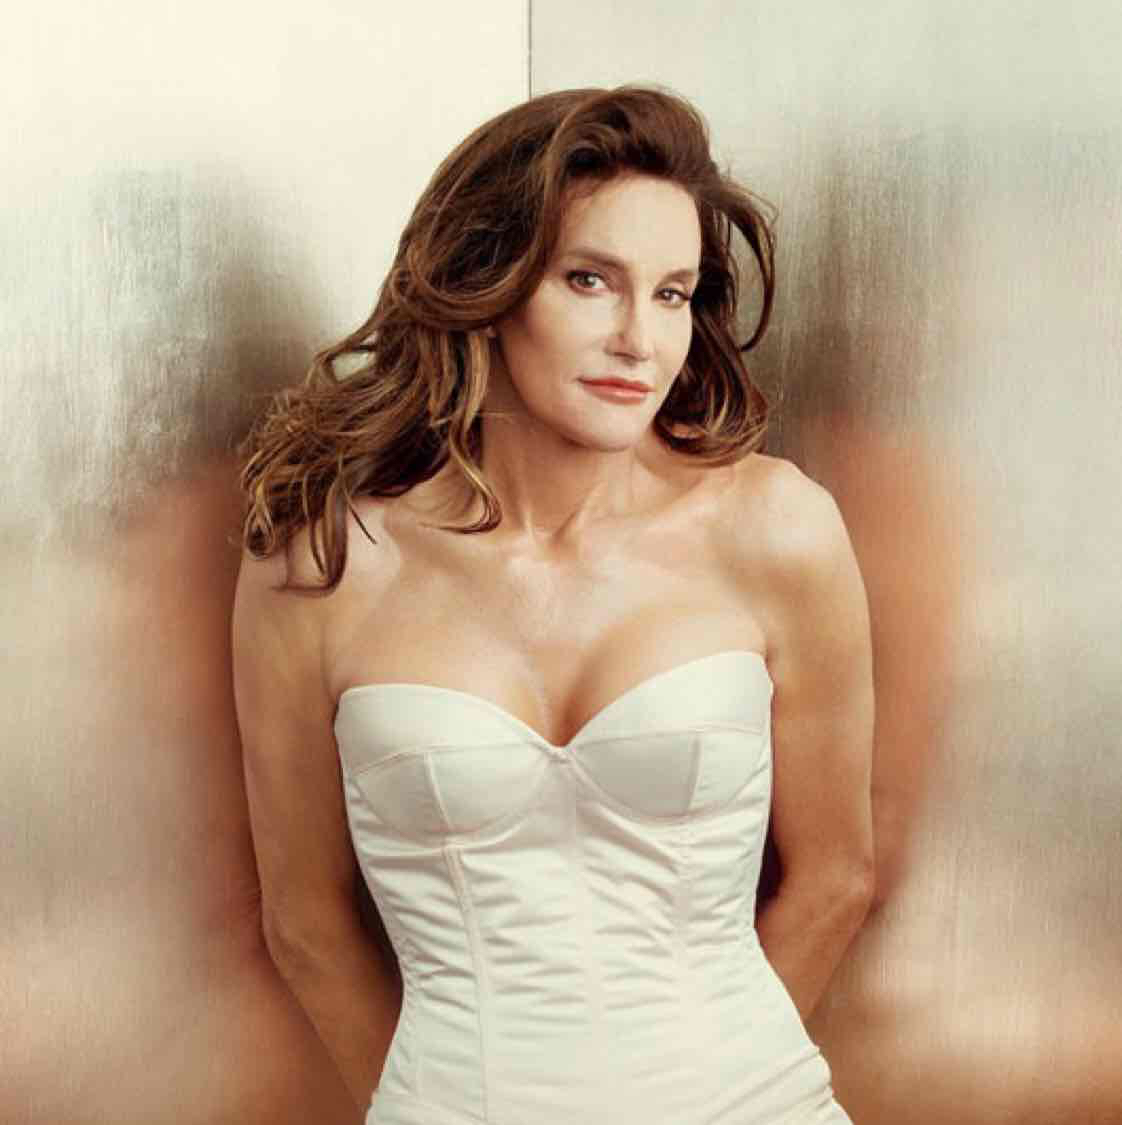 Avatar of Caitlyn Jenner